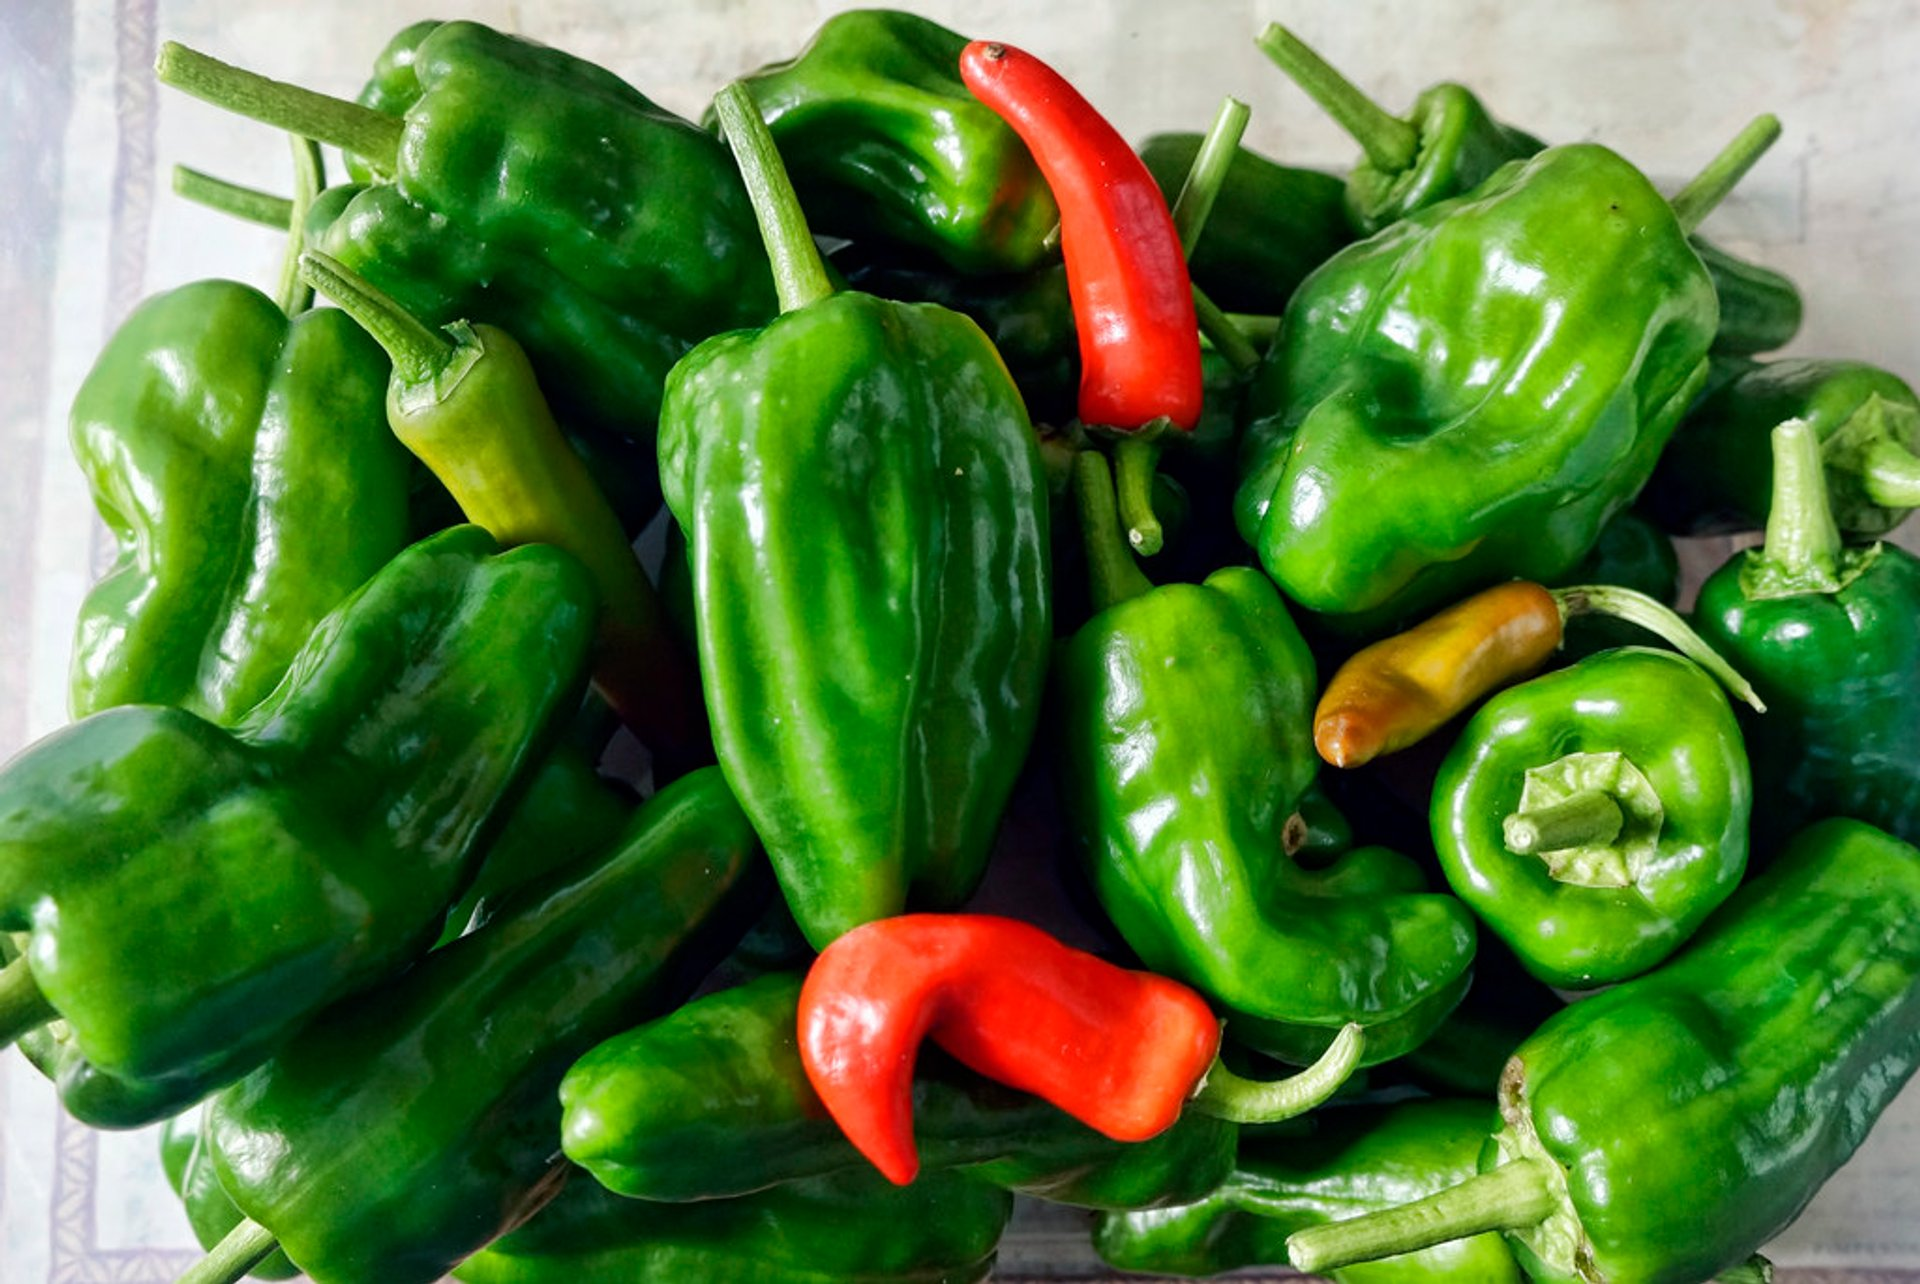 Best time to see Padrón Peppers (Pimientos de Padrón) in Spain 2019